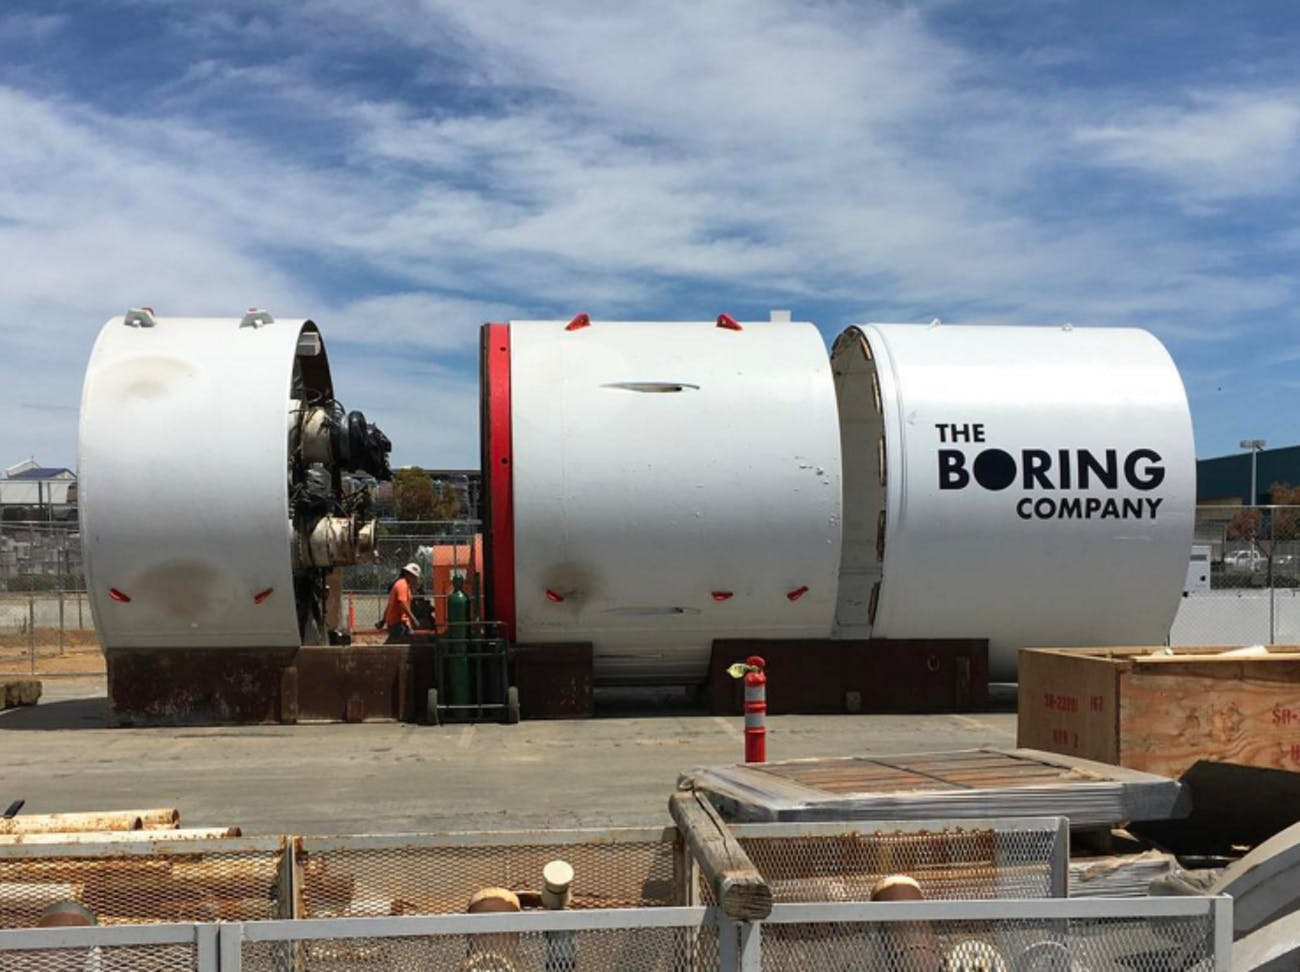 Godot, The Boring Company's Boring Machine.